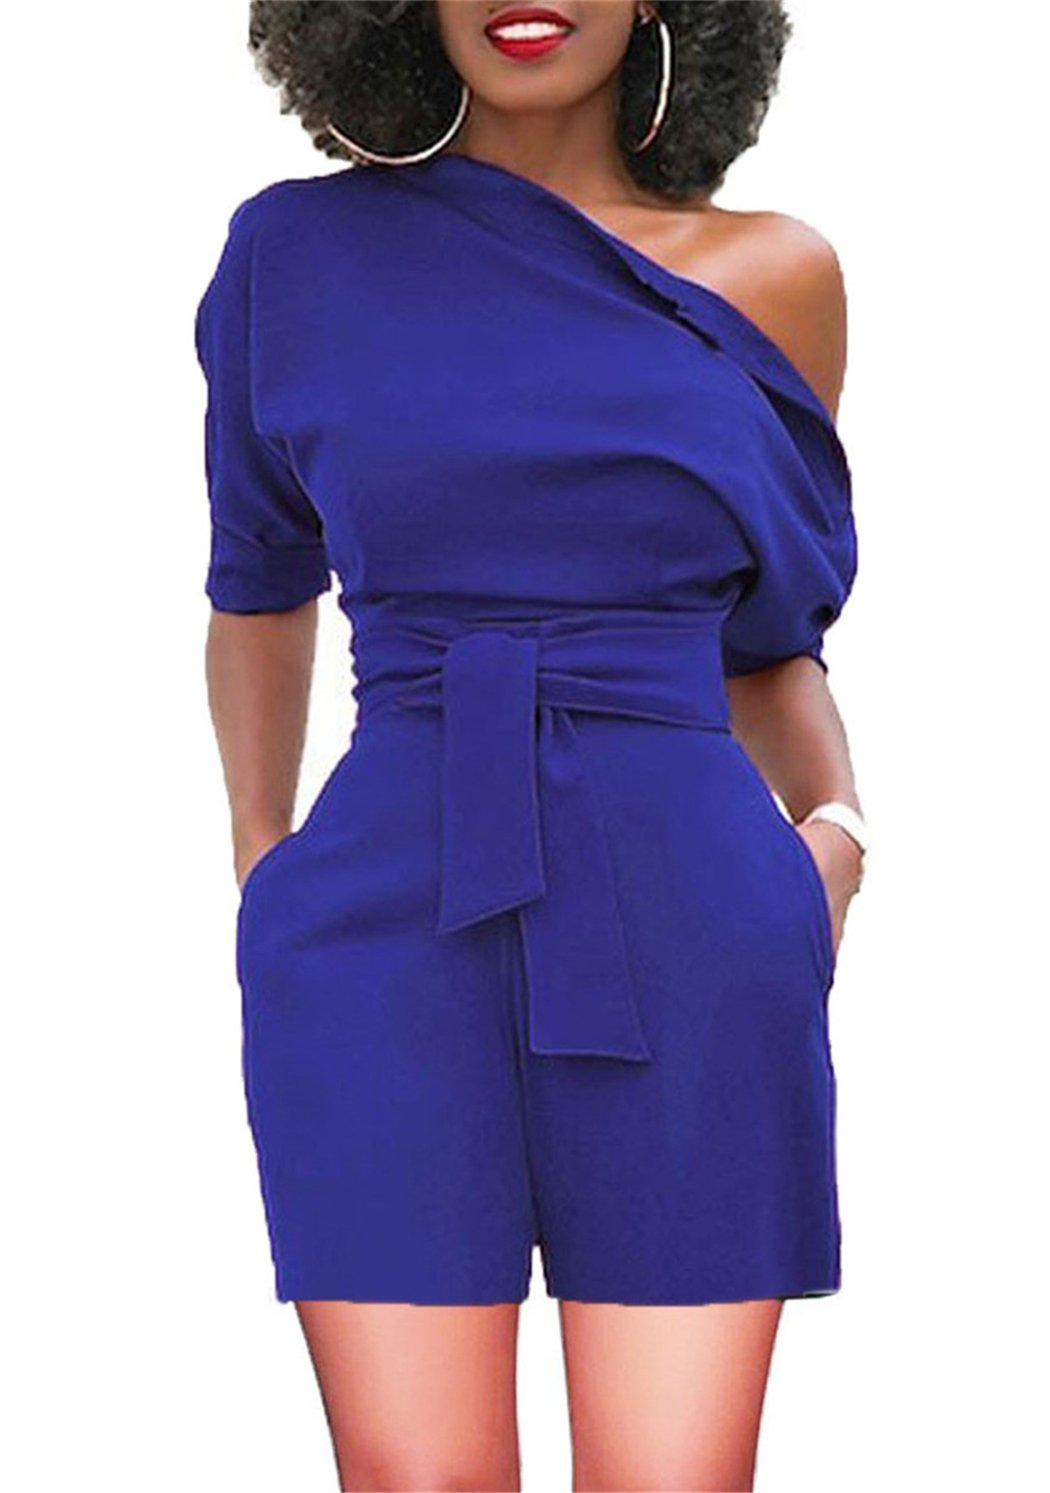 Women's One Off Shoulder High Waisted Club Suits Bodycon with Pockets Blue XX-Large